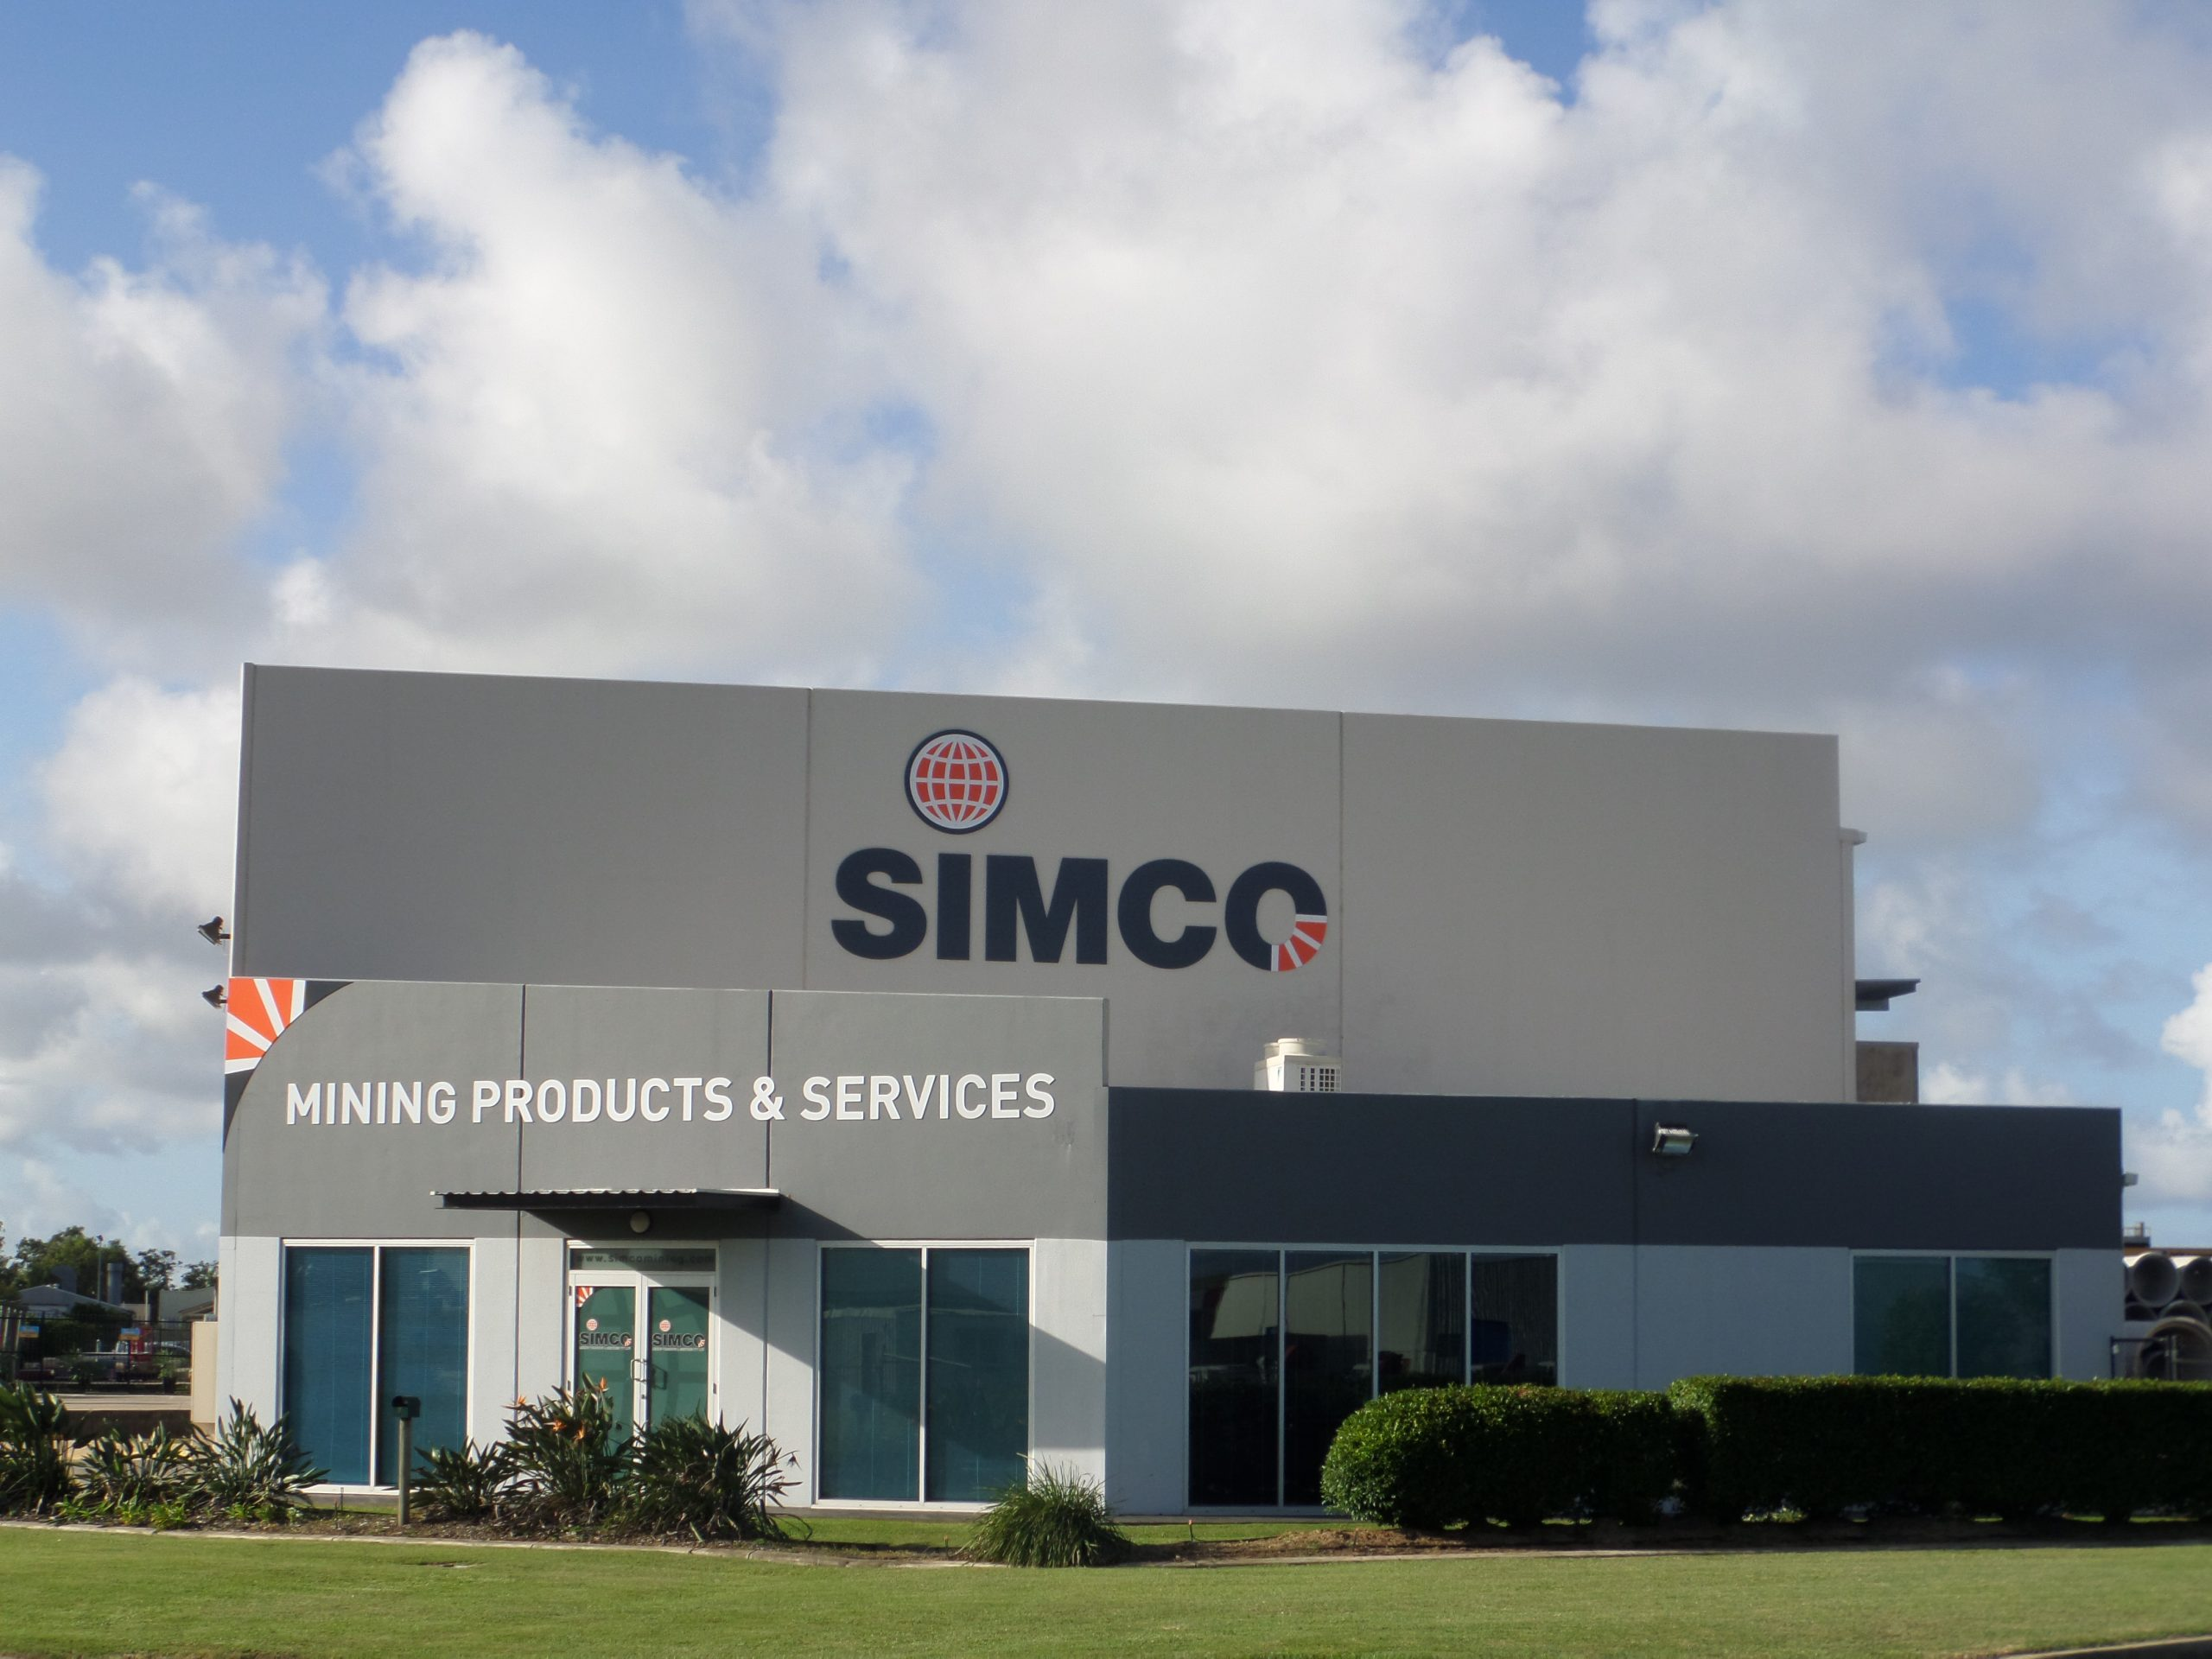 SIMCO Mining Products & Services